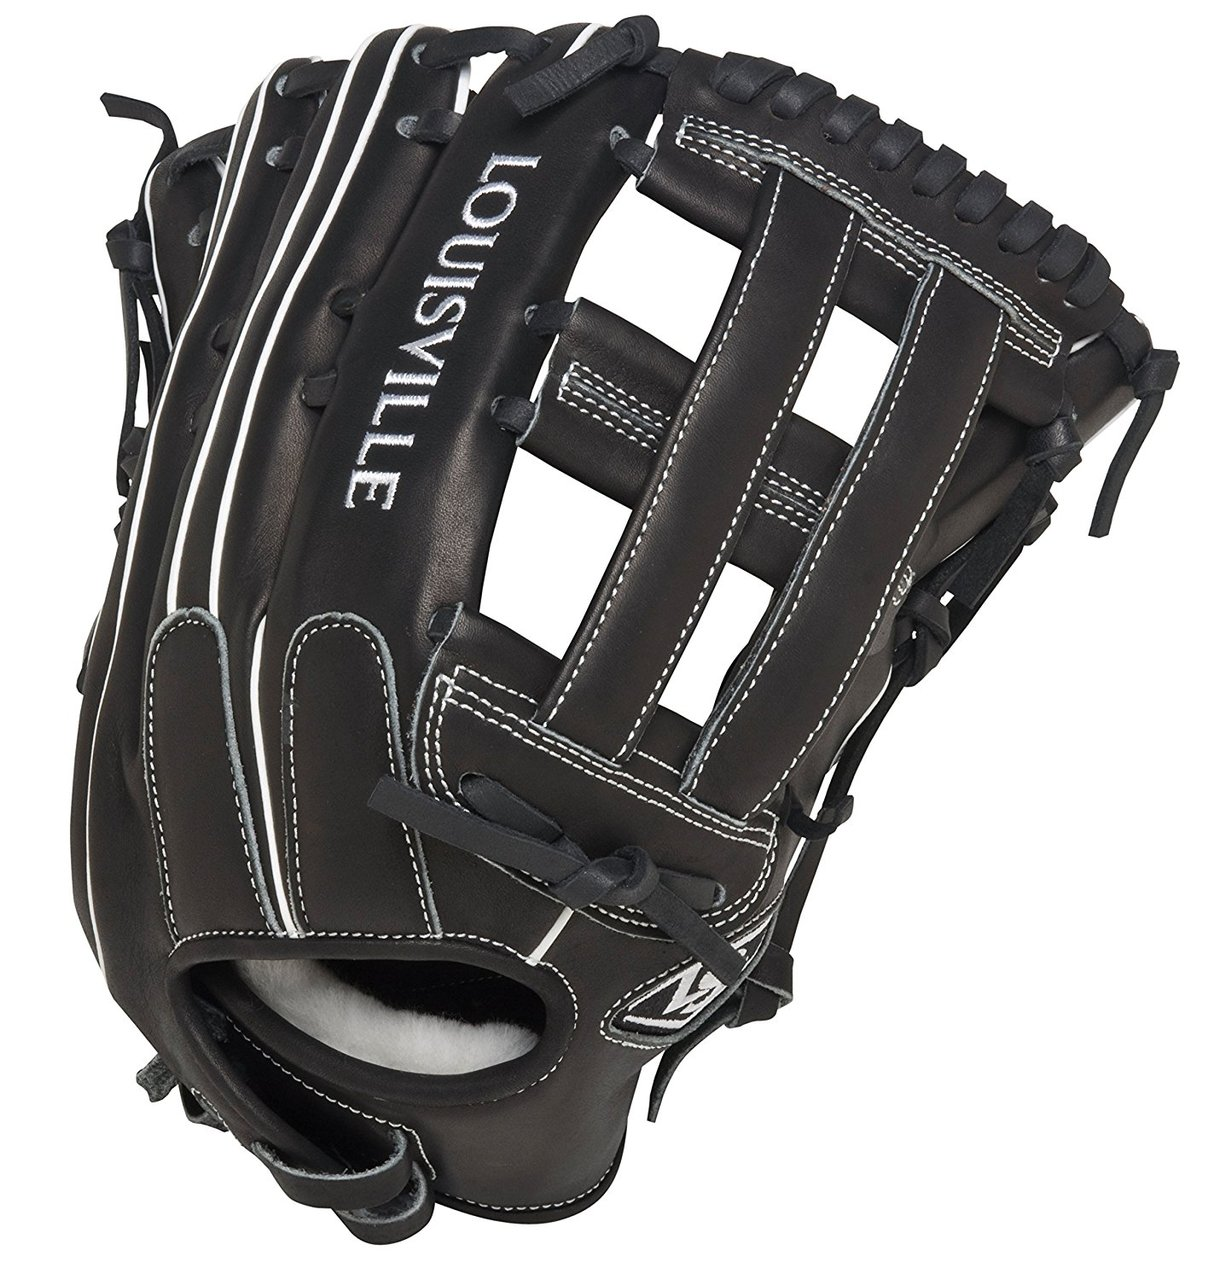 louisville-slugger-fgszbk5-super-z-black-fielding-glove-13-5-inch-left-hand-throw FGSZBK5-1350-Left Handed Throw Louisville 044277051952 Professional-grade oil infused leather Combines unmatched durability with ultra quick break-in